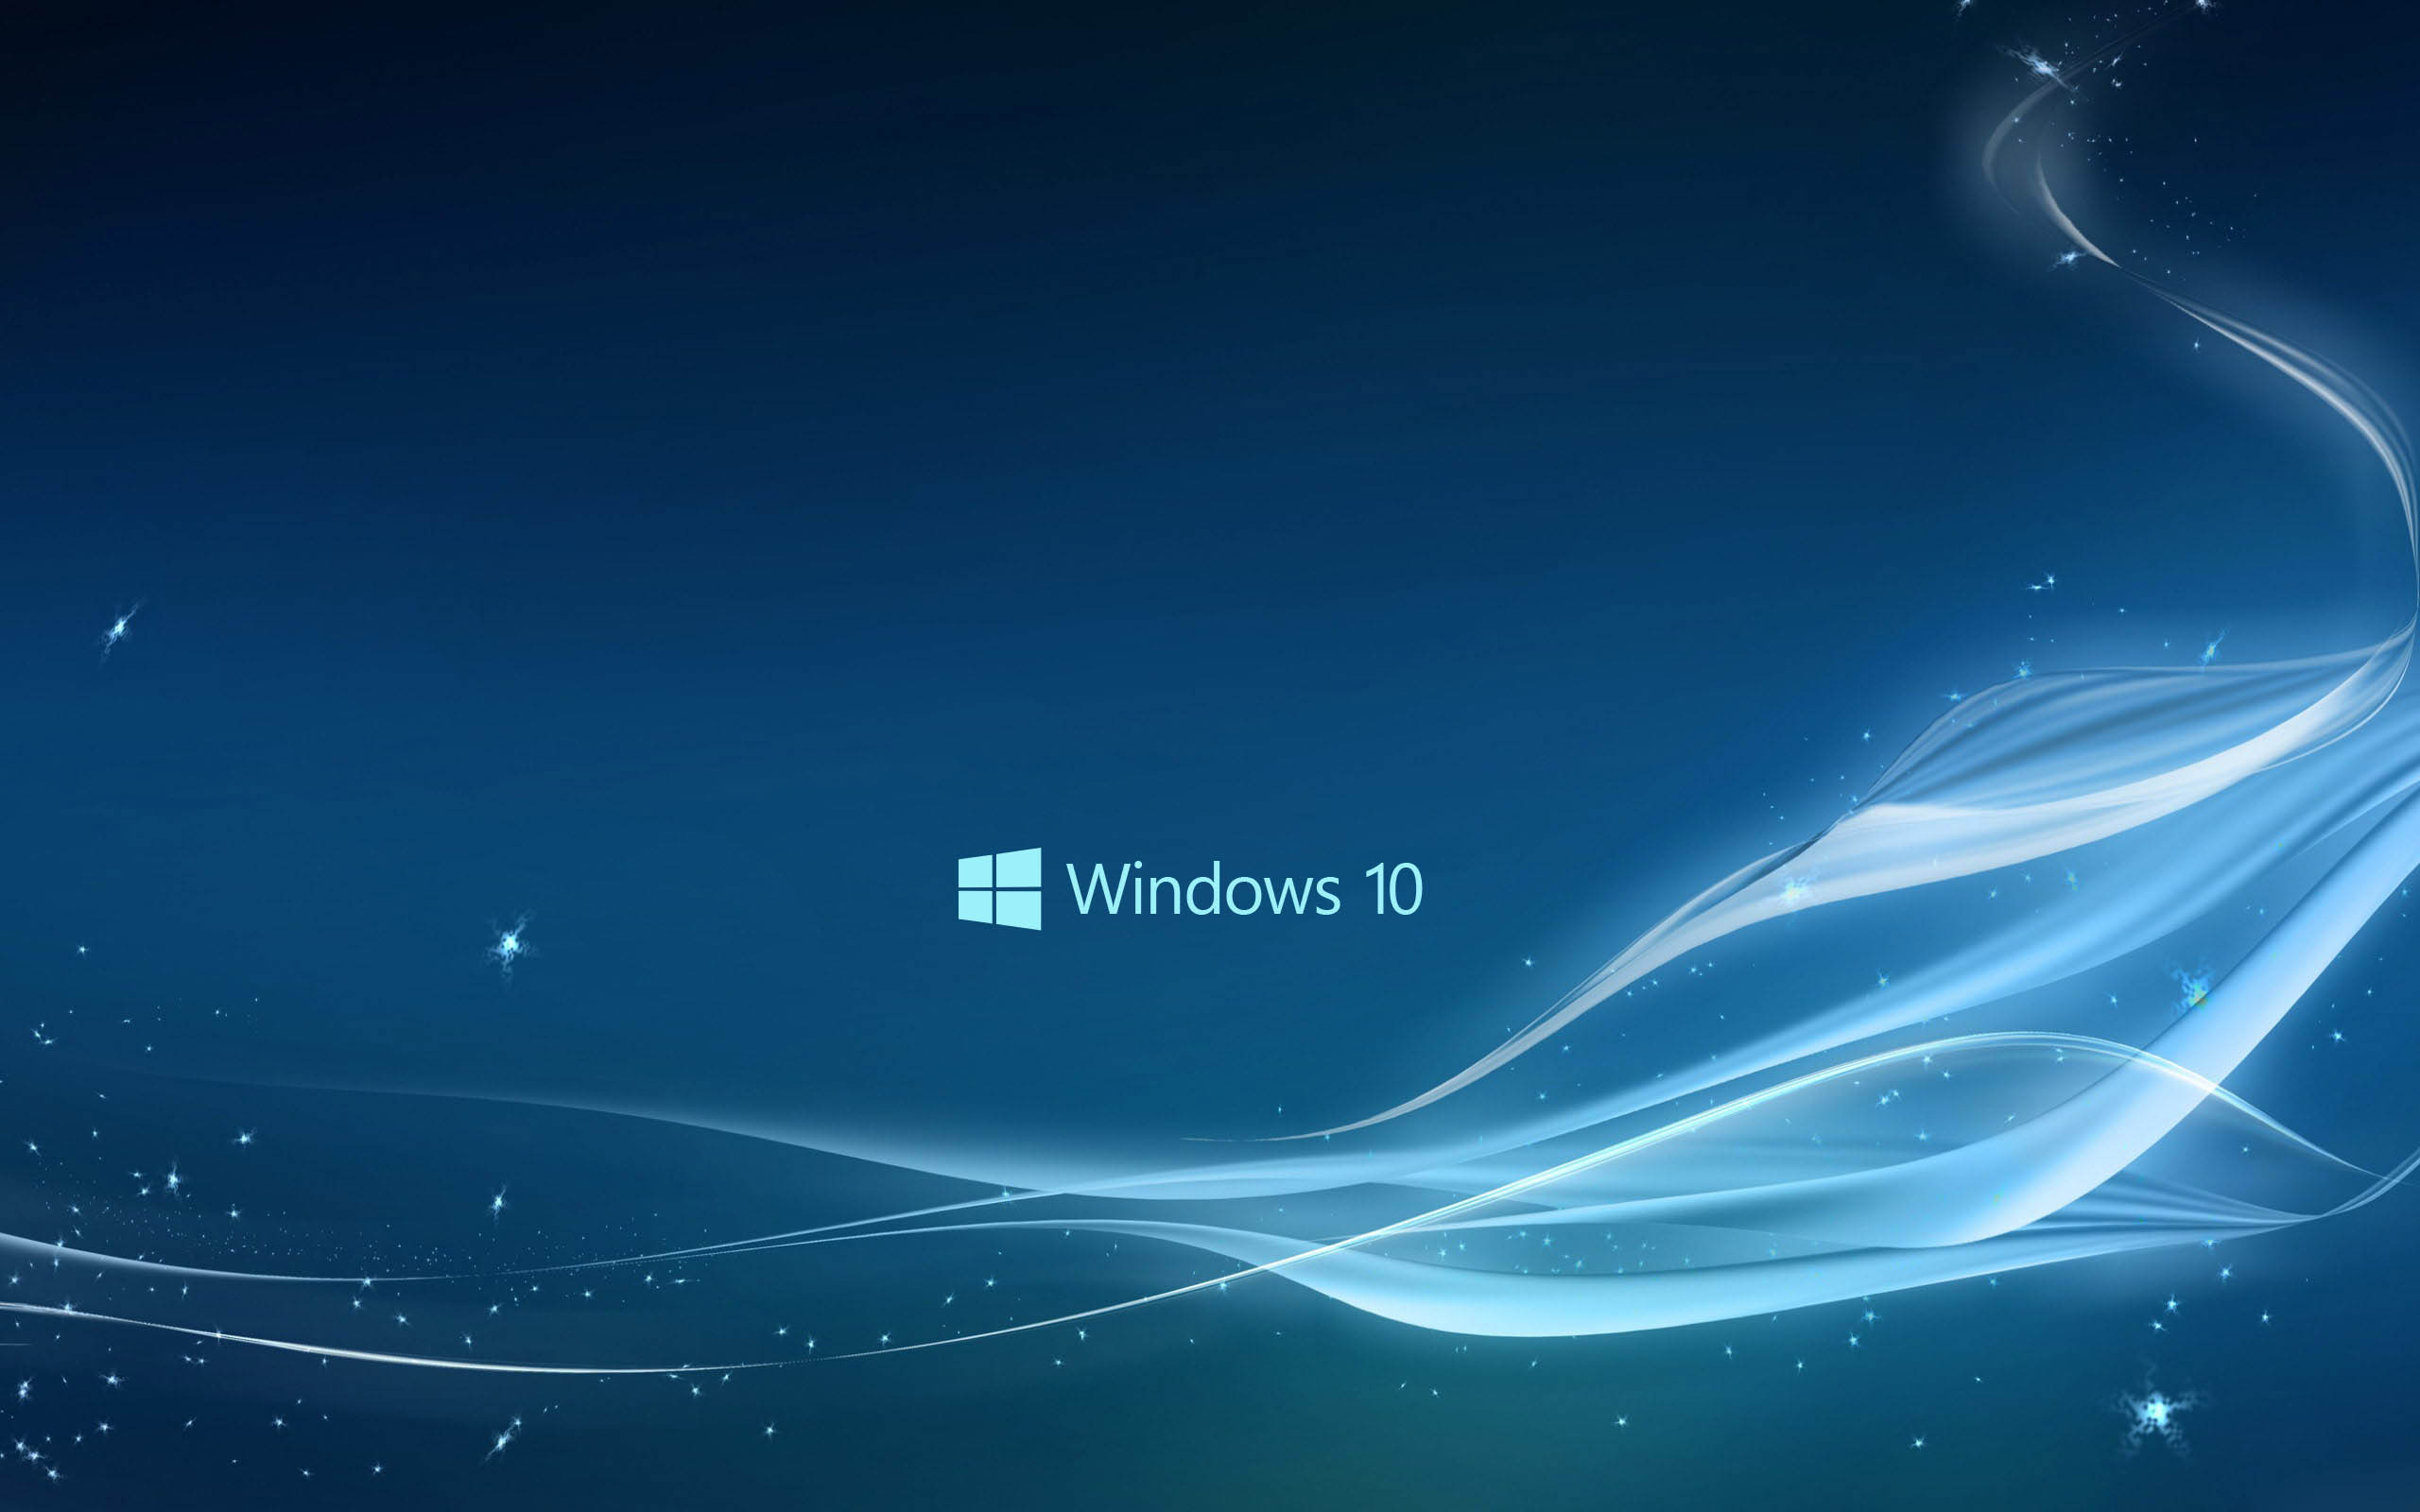 Fondo de escritorio windows 10 im genes taringa - Fondos de escritorio hd para windows ...